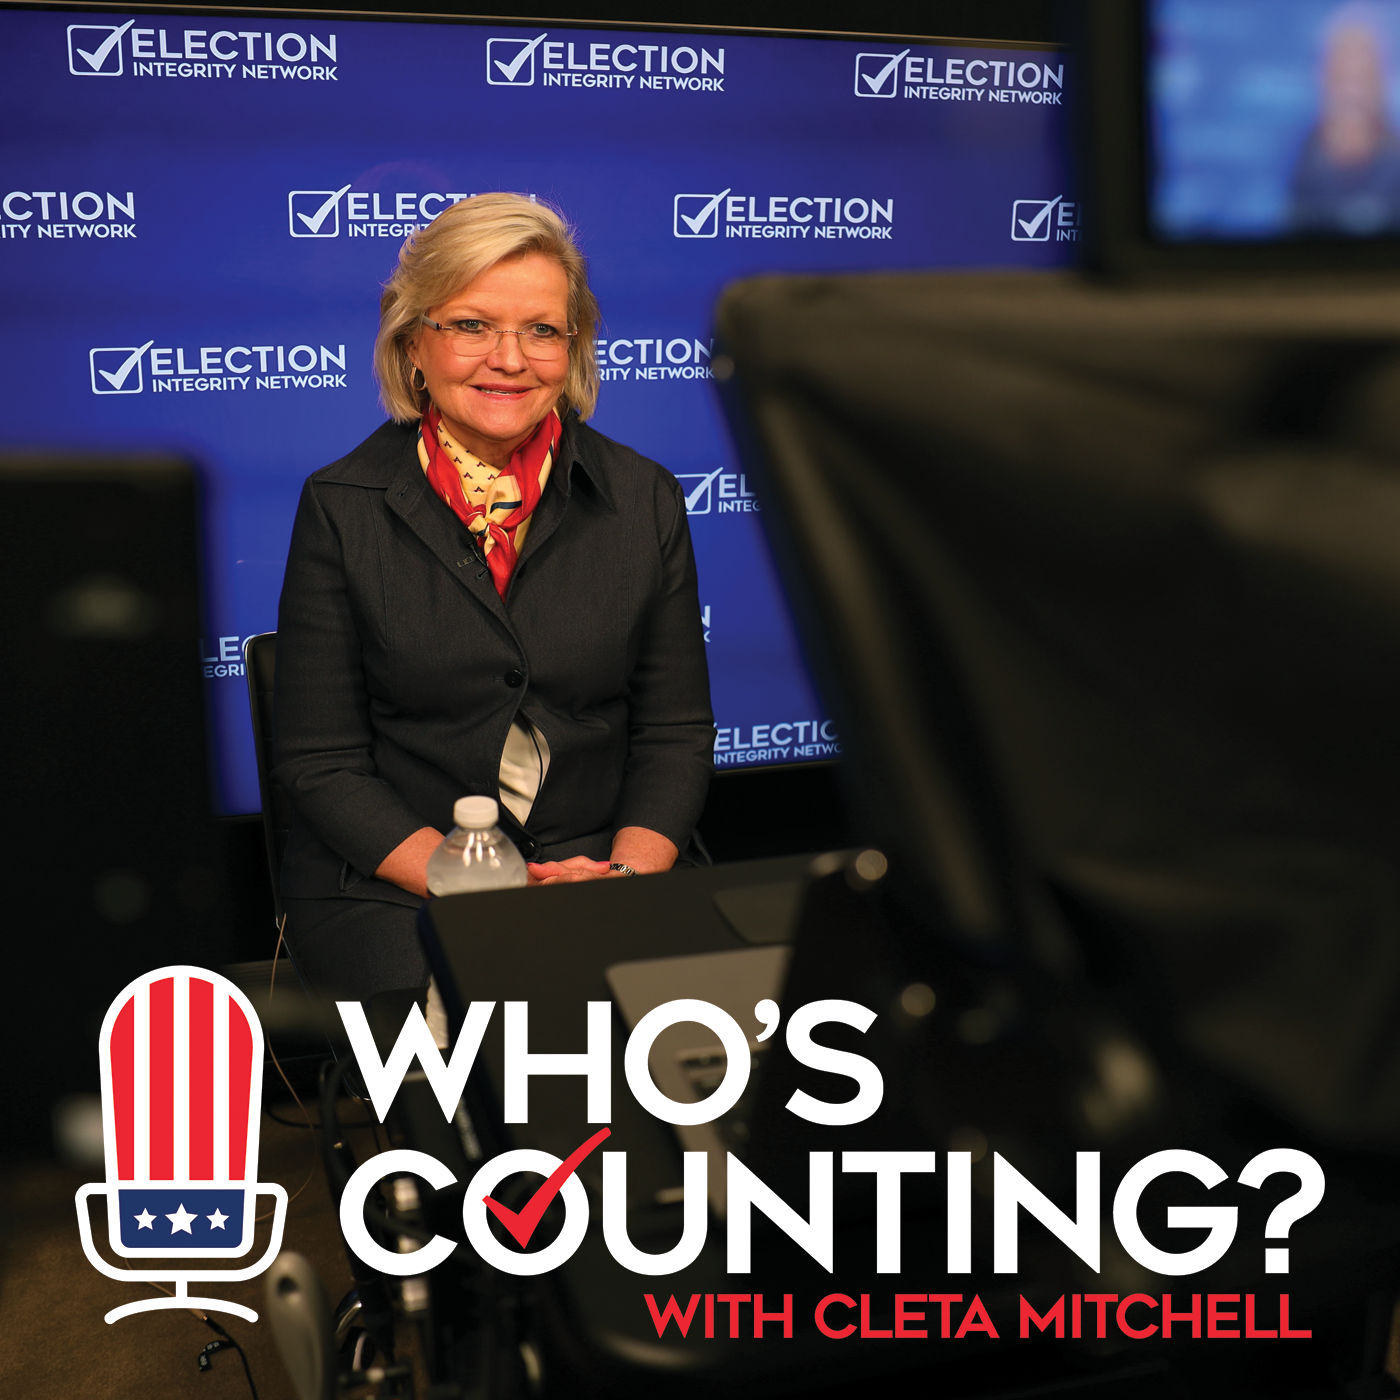 Who's Counting with Cleta Mitchell